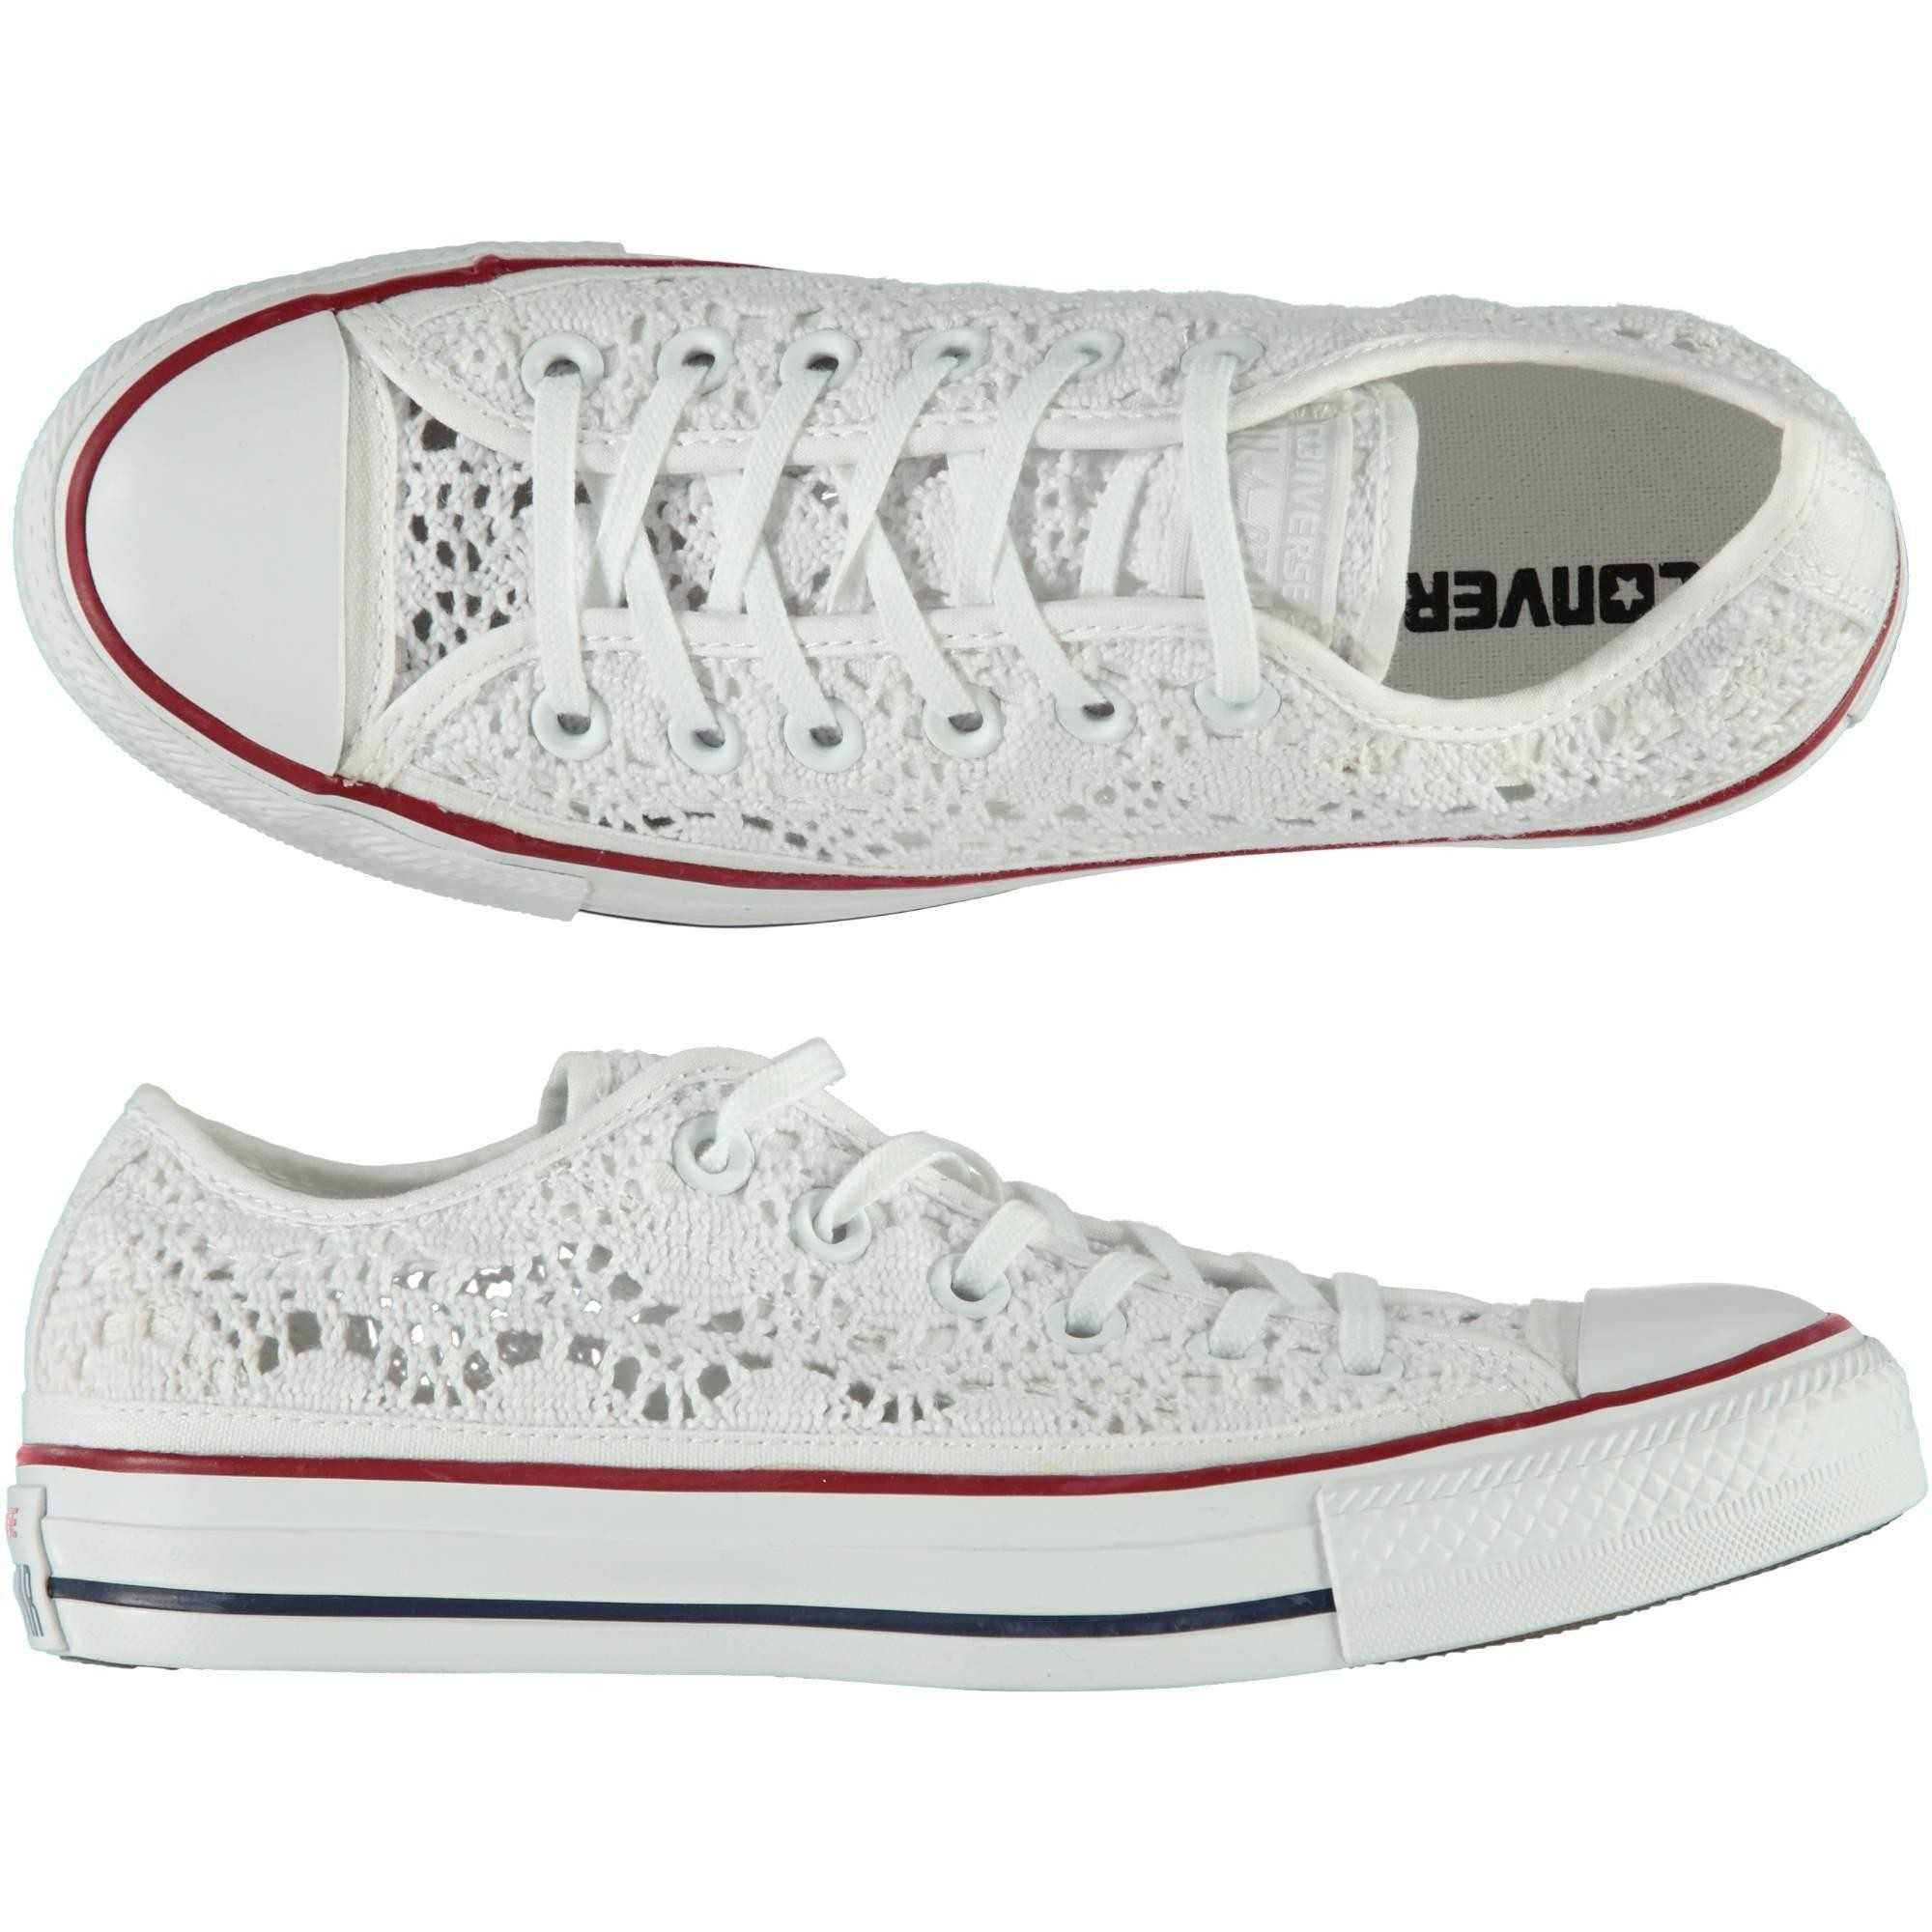 converse all star bimche basse